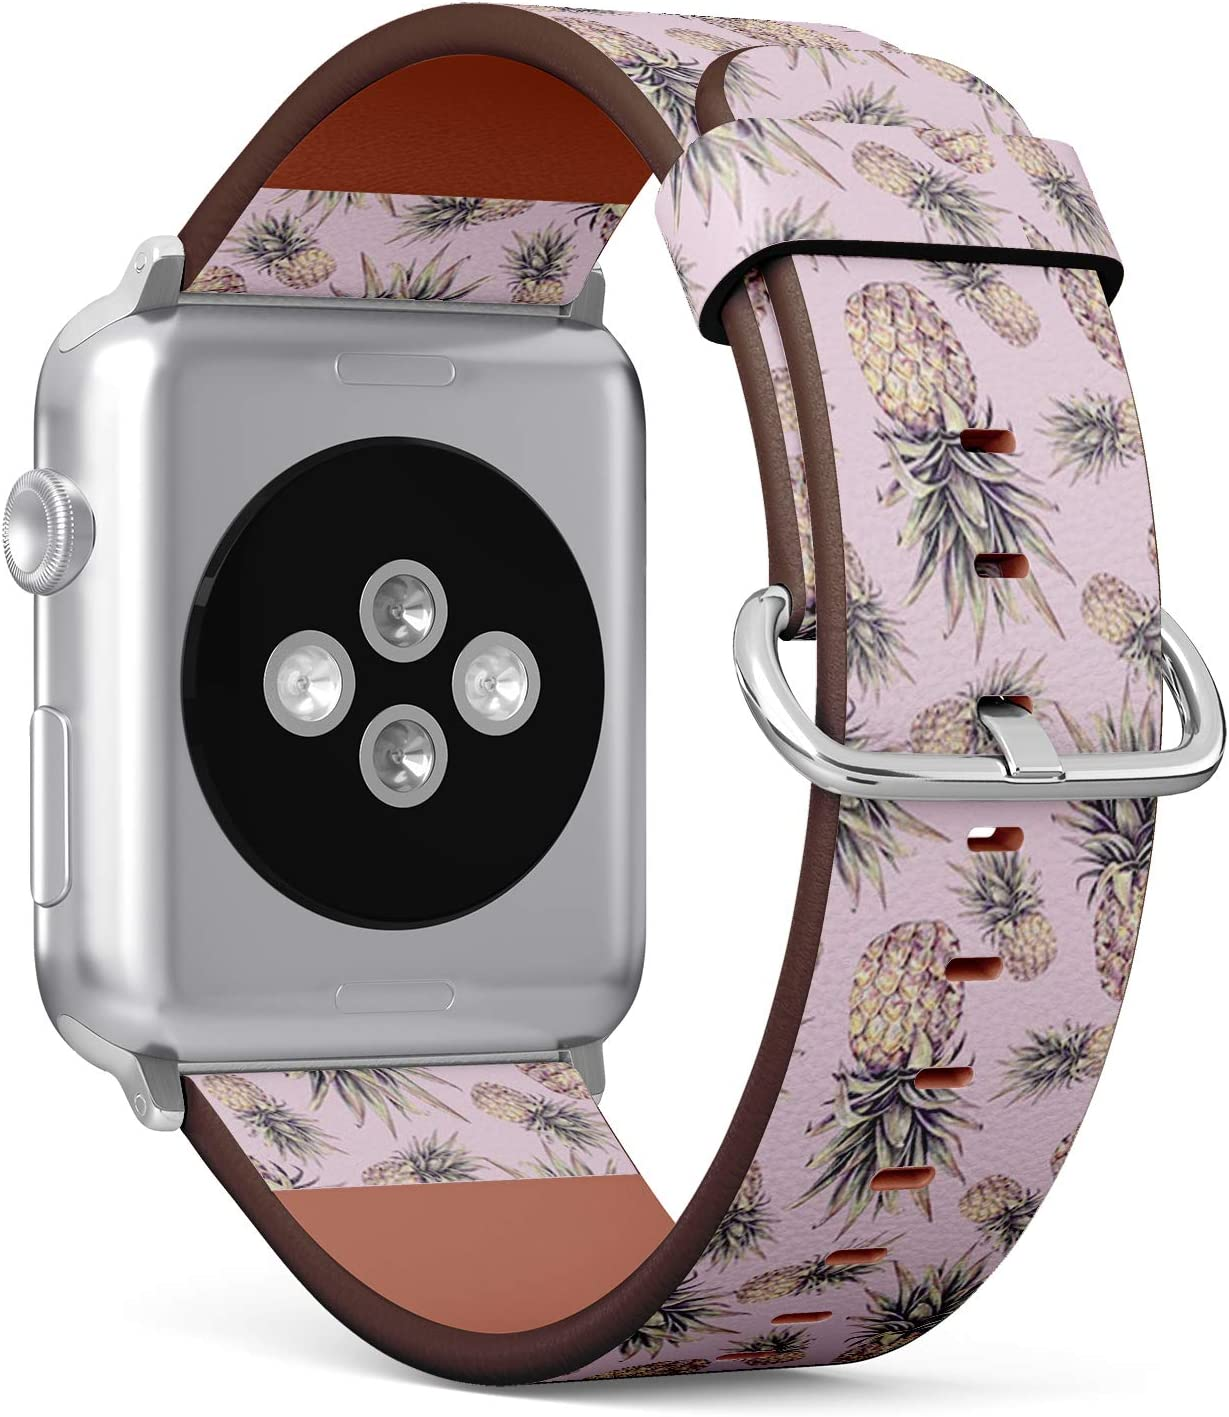 Compatible with Small Apple Watch 38mm & 40mm (Series 5, 4, 3, 2, 1) Leather Watch Wrist Band Strap Bracelet with Stainless Steel Clasp and Adapters (Pineapple On Pink Watercolor)